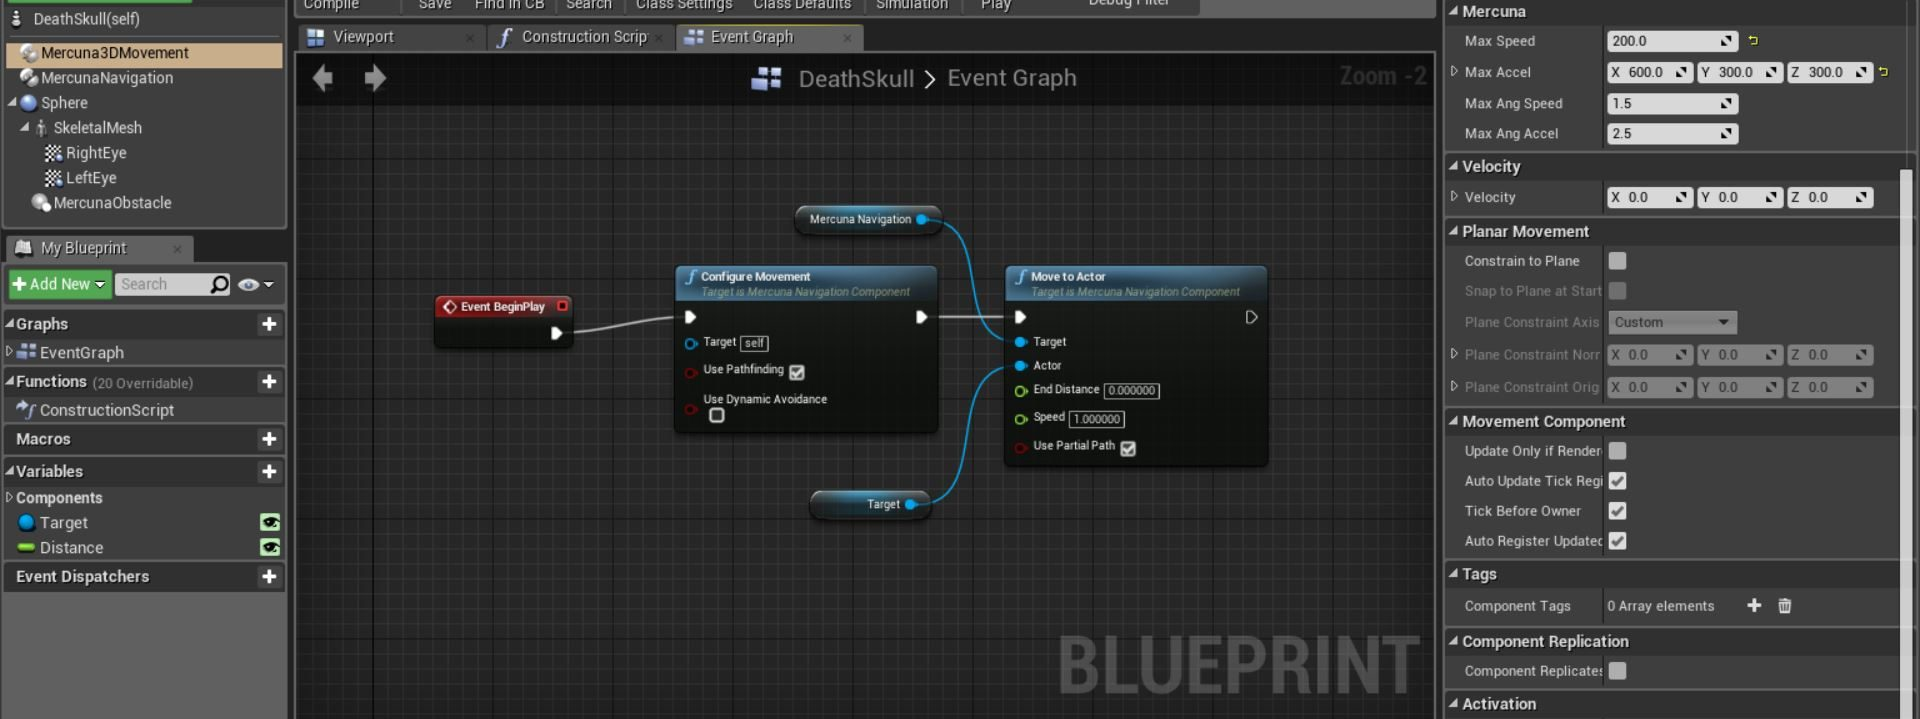 Ue4 user guide mercuna simple unreal blueprint malvernweather Gallery